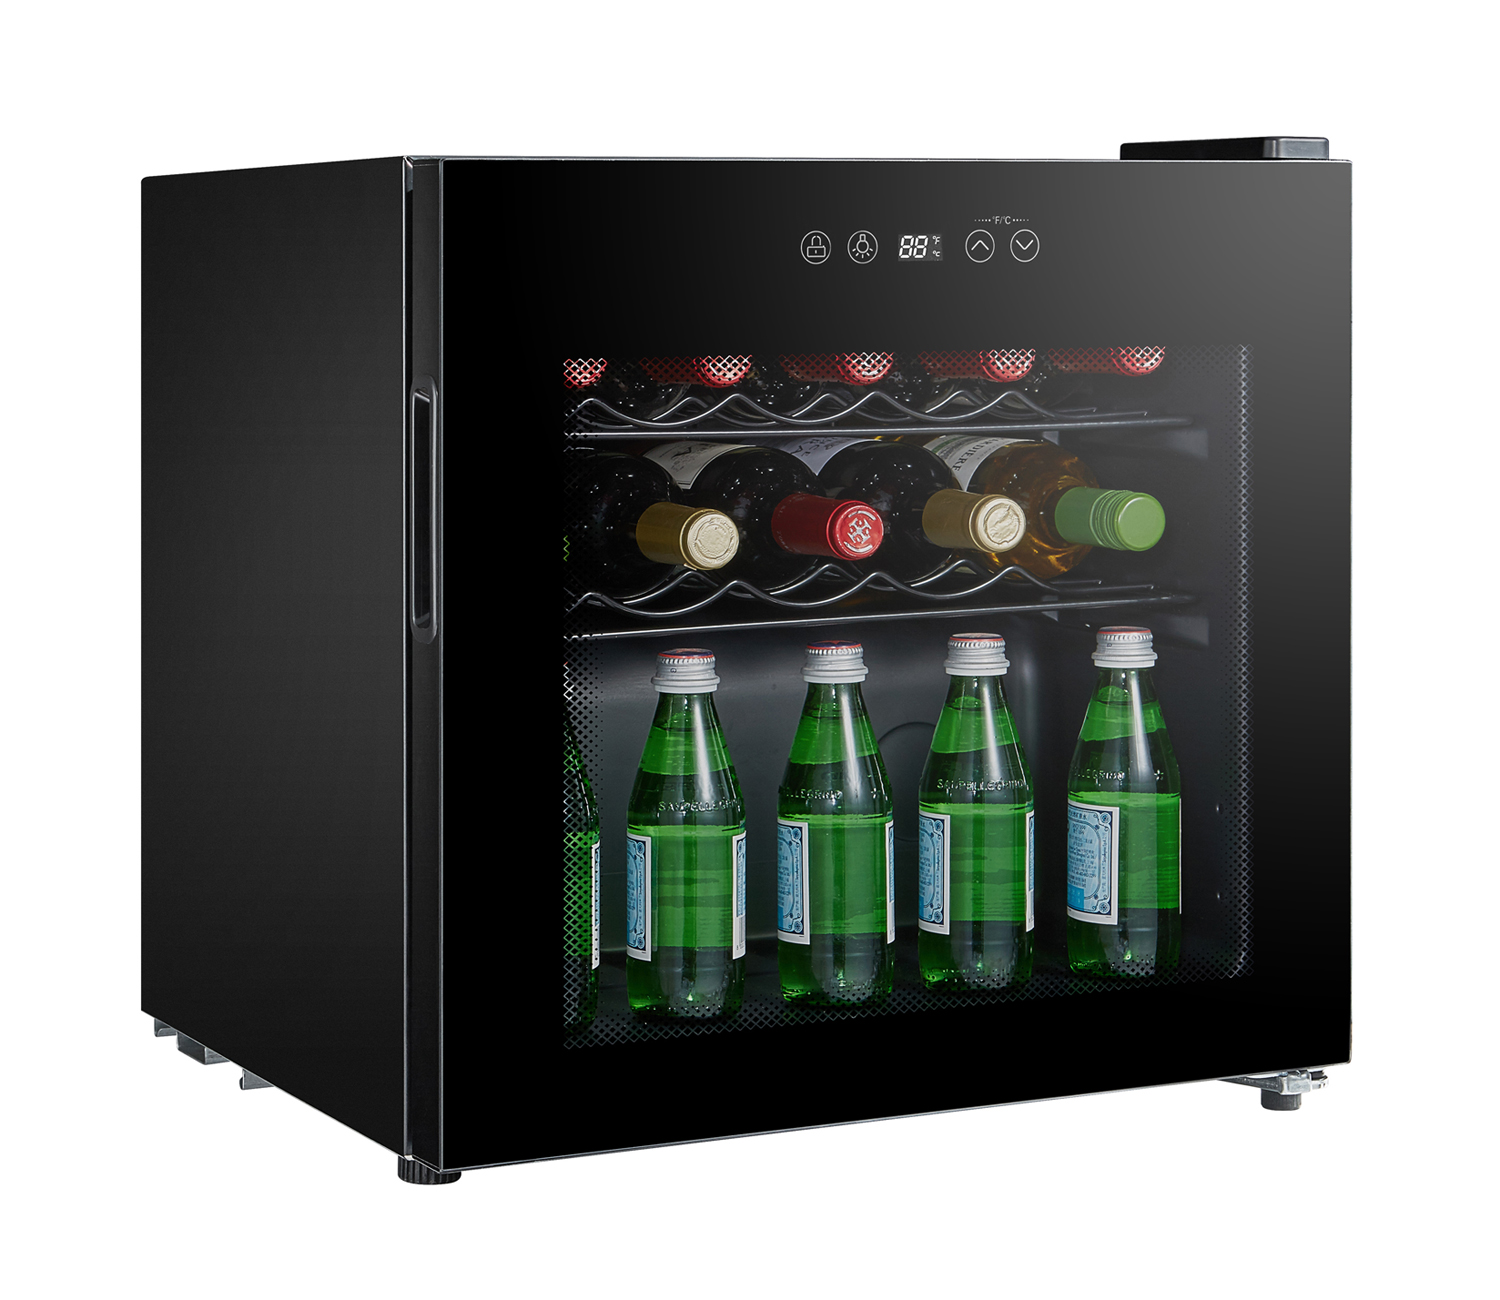 Sunpentown Single Zone Compressor Wine Cooler (16-bottles)